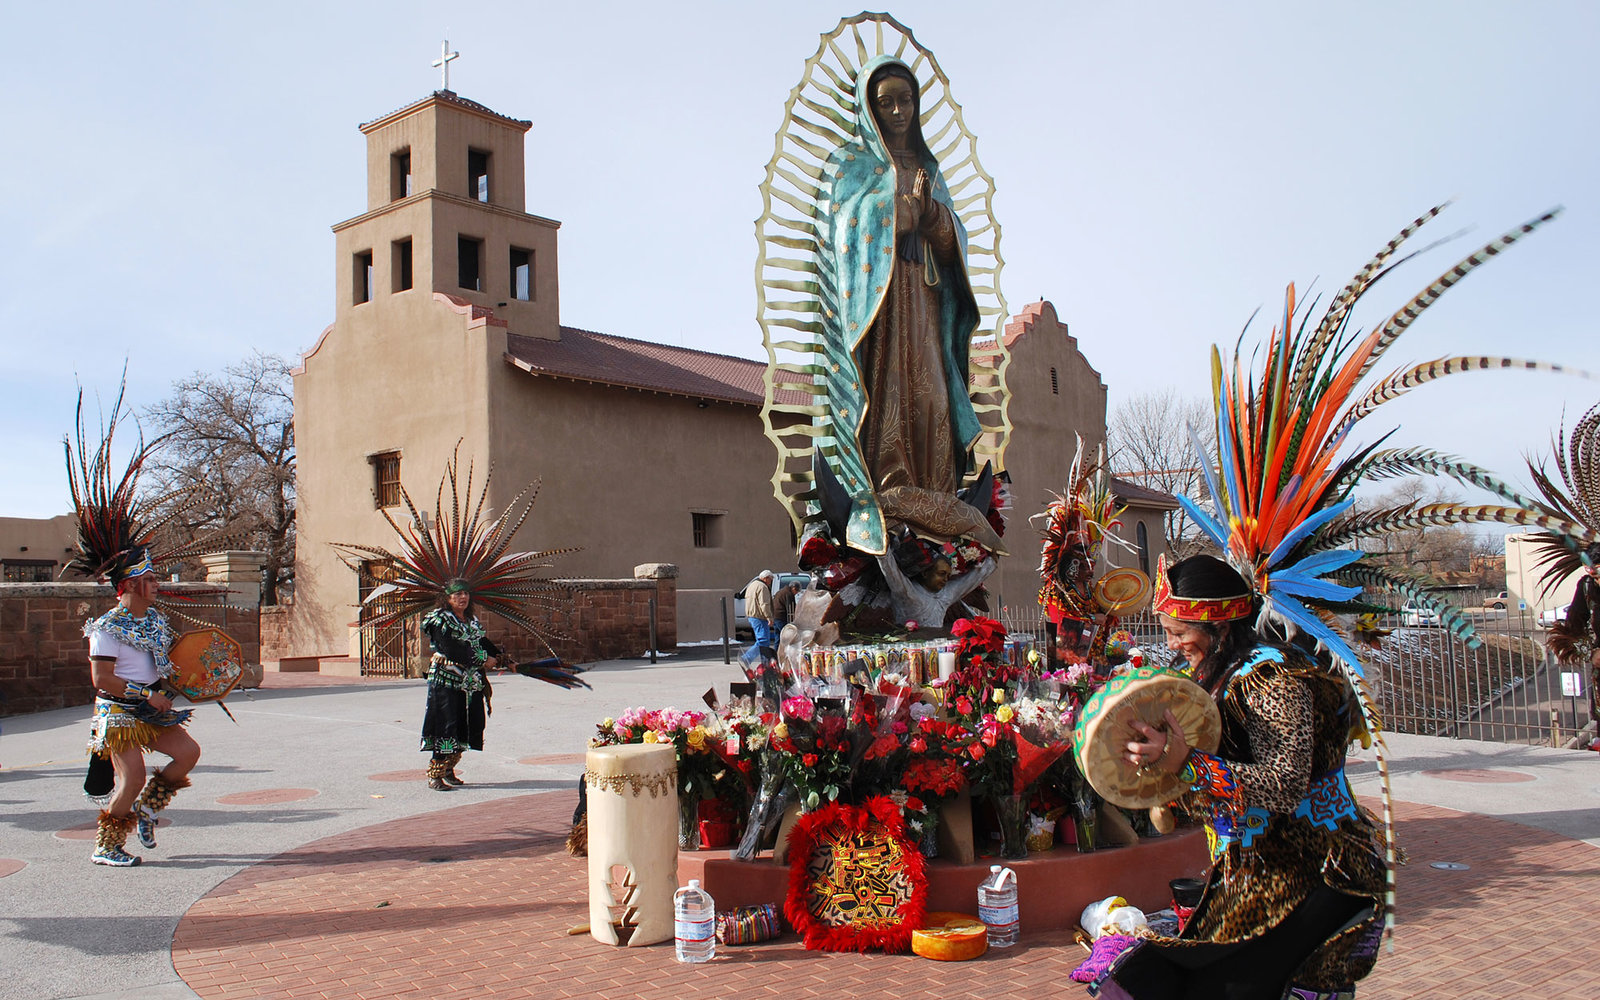 Guadalupe Church Santa Fe New Mexico